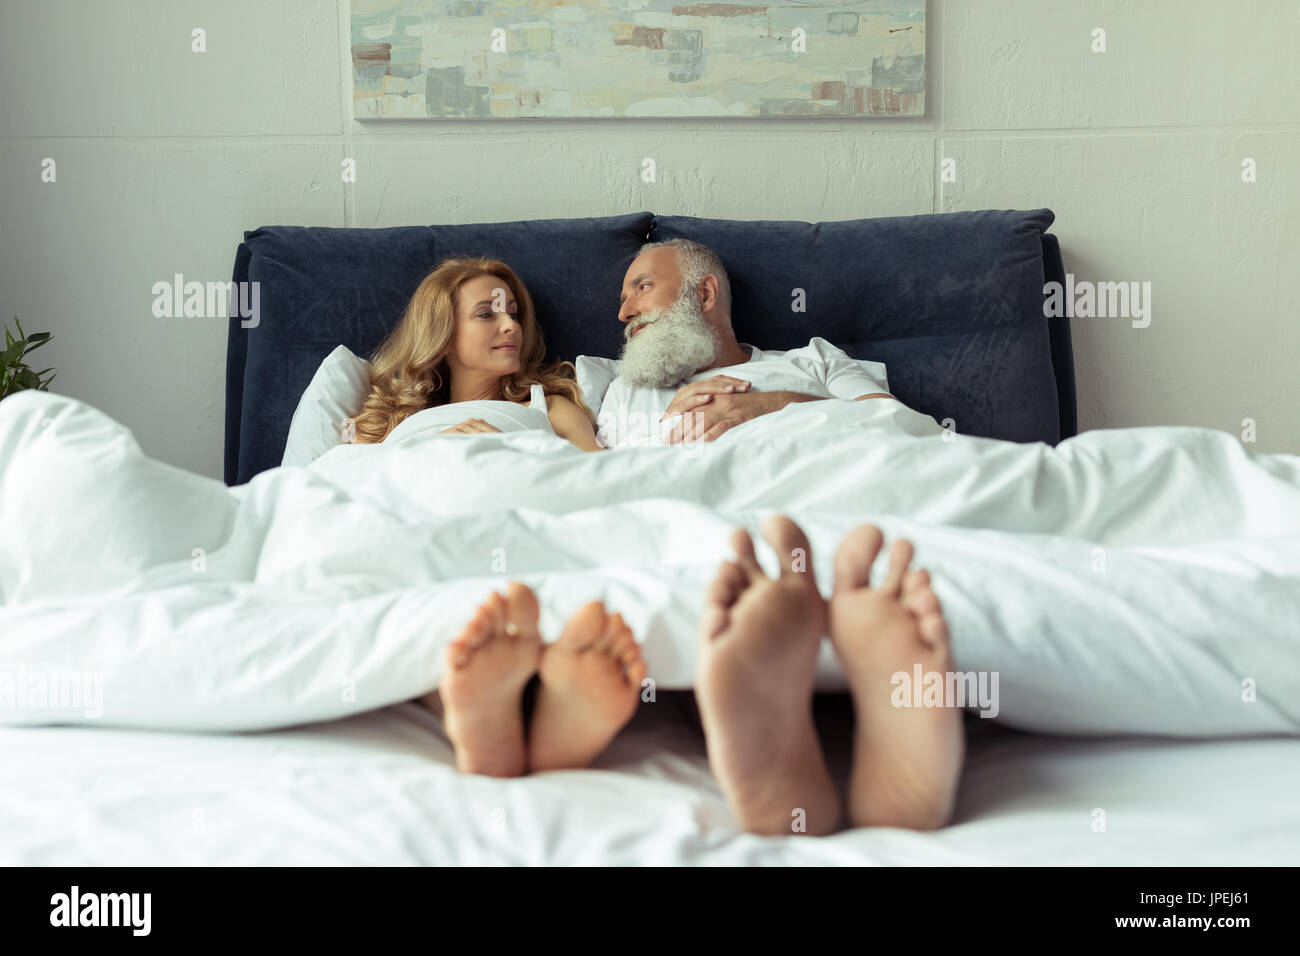 couple bed feet stock photos & couple bed feet stock images - alamy